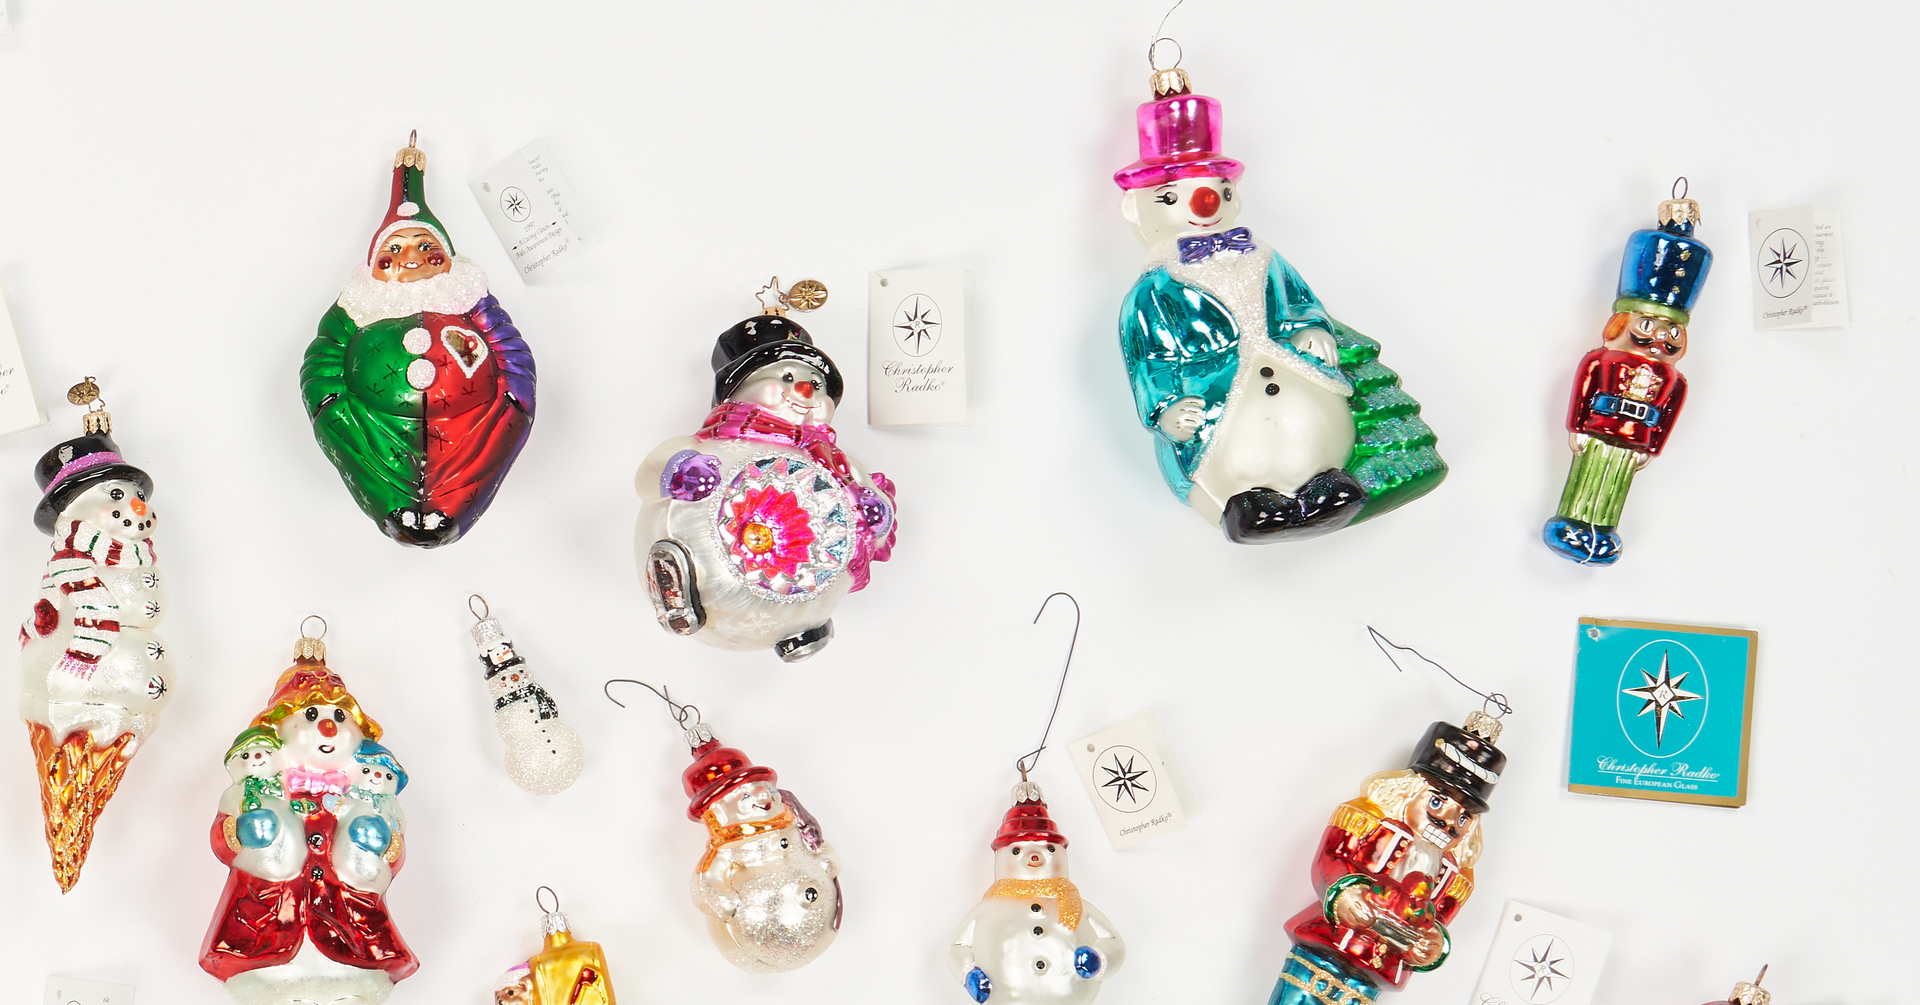 Lot 1182: 30 Christopher Radko Christmas Ornaments, incl. Signed